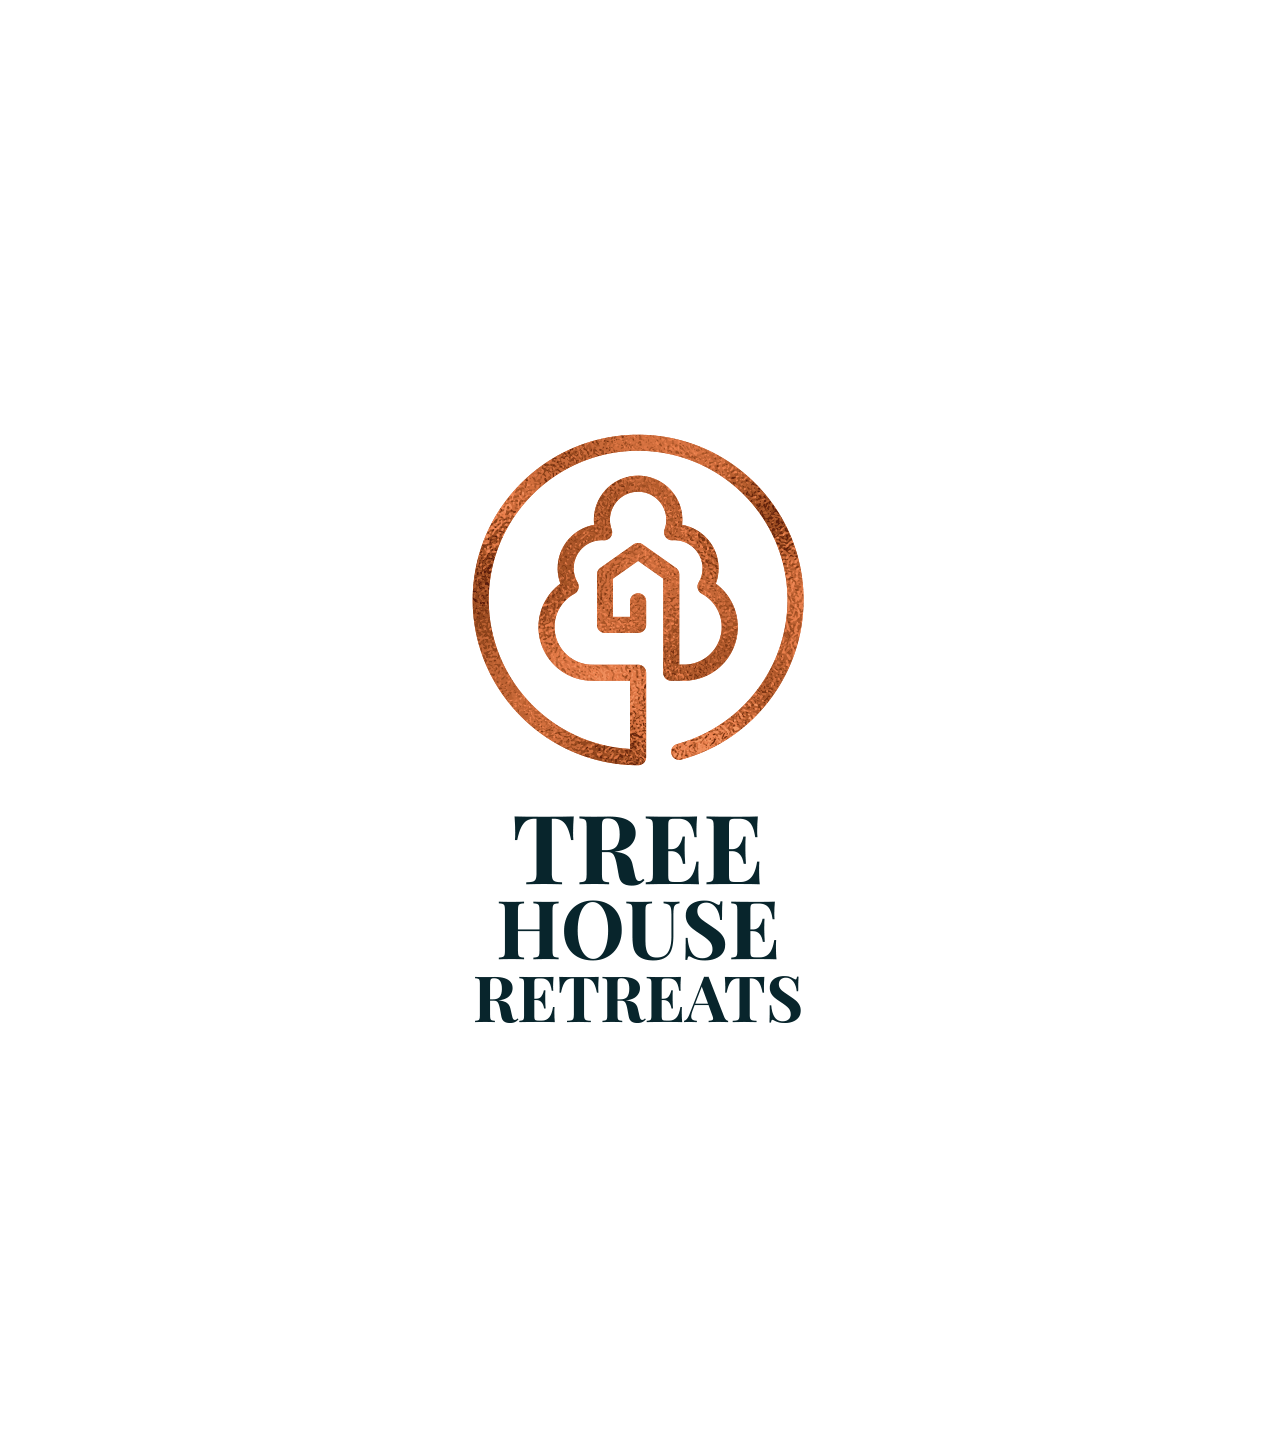 Tree House Retreats